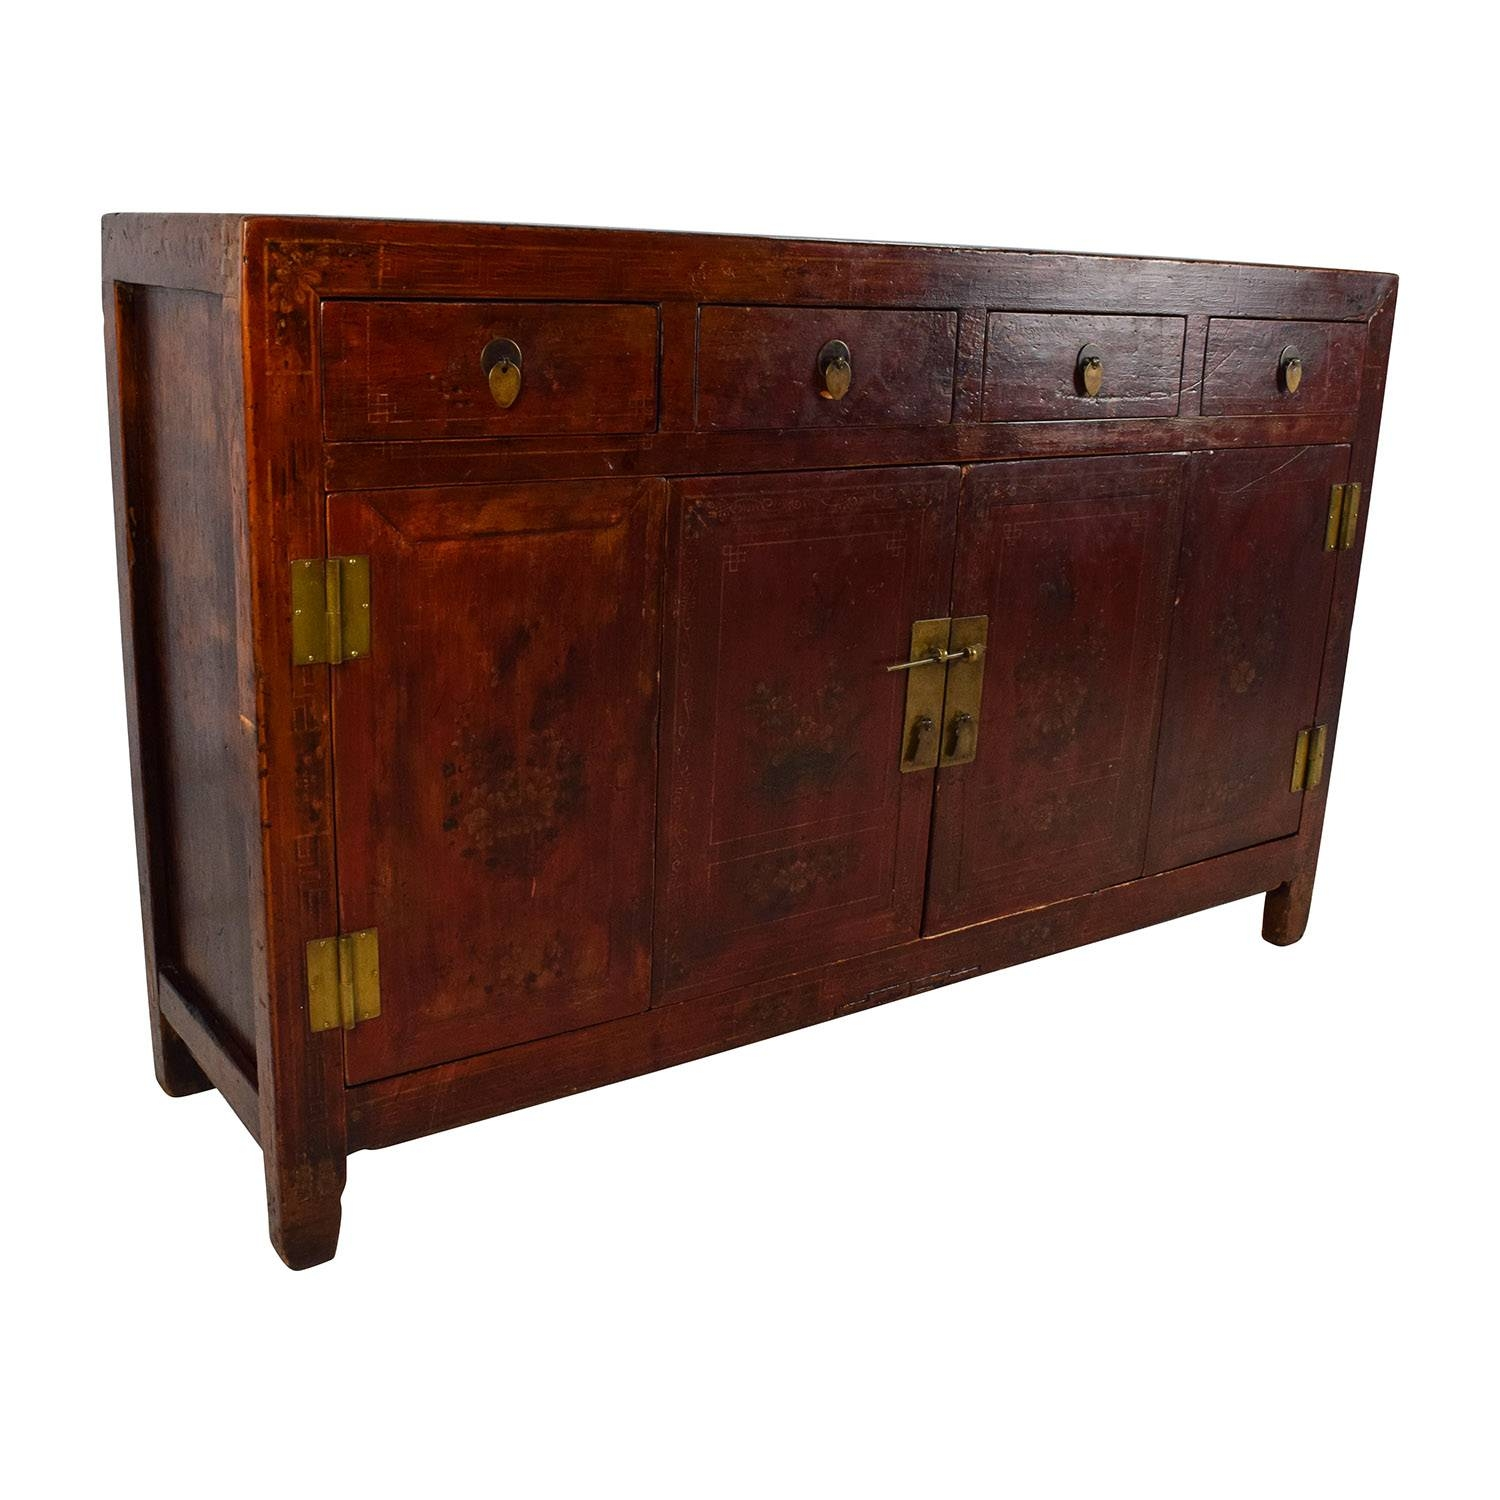 66% Off   Solid Wood Southeast Asian Credenza / Storage Regarding Asian Sideboards (Photo 4 of 30)